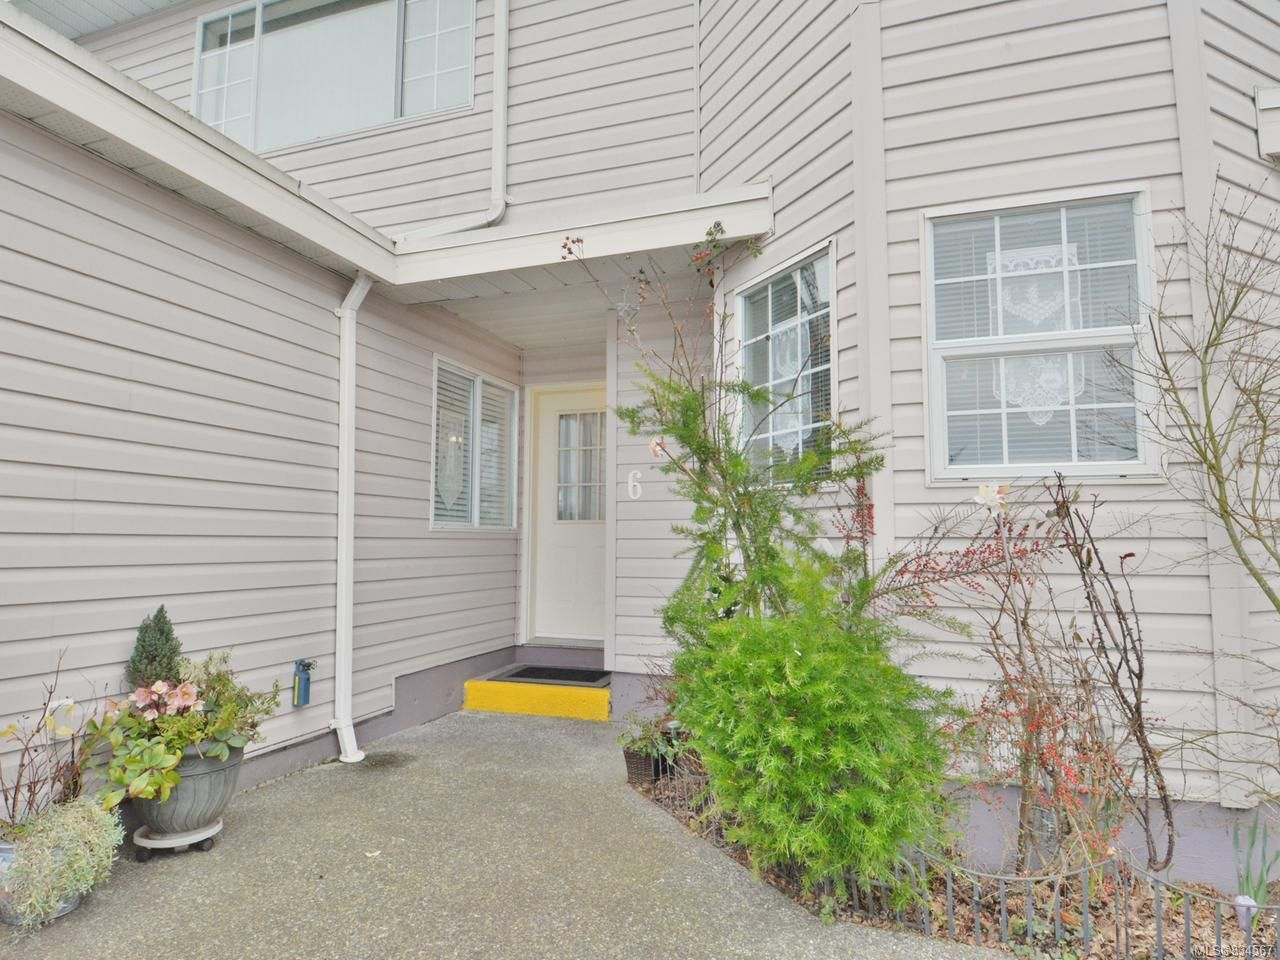 Main Photo: 6 100 First Ave in LADYSMITH: Du Ladysmith Row/Townhouse for sale (Duncan)  : MLS®# 834567